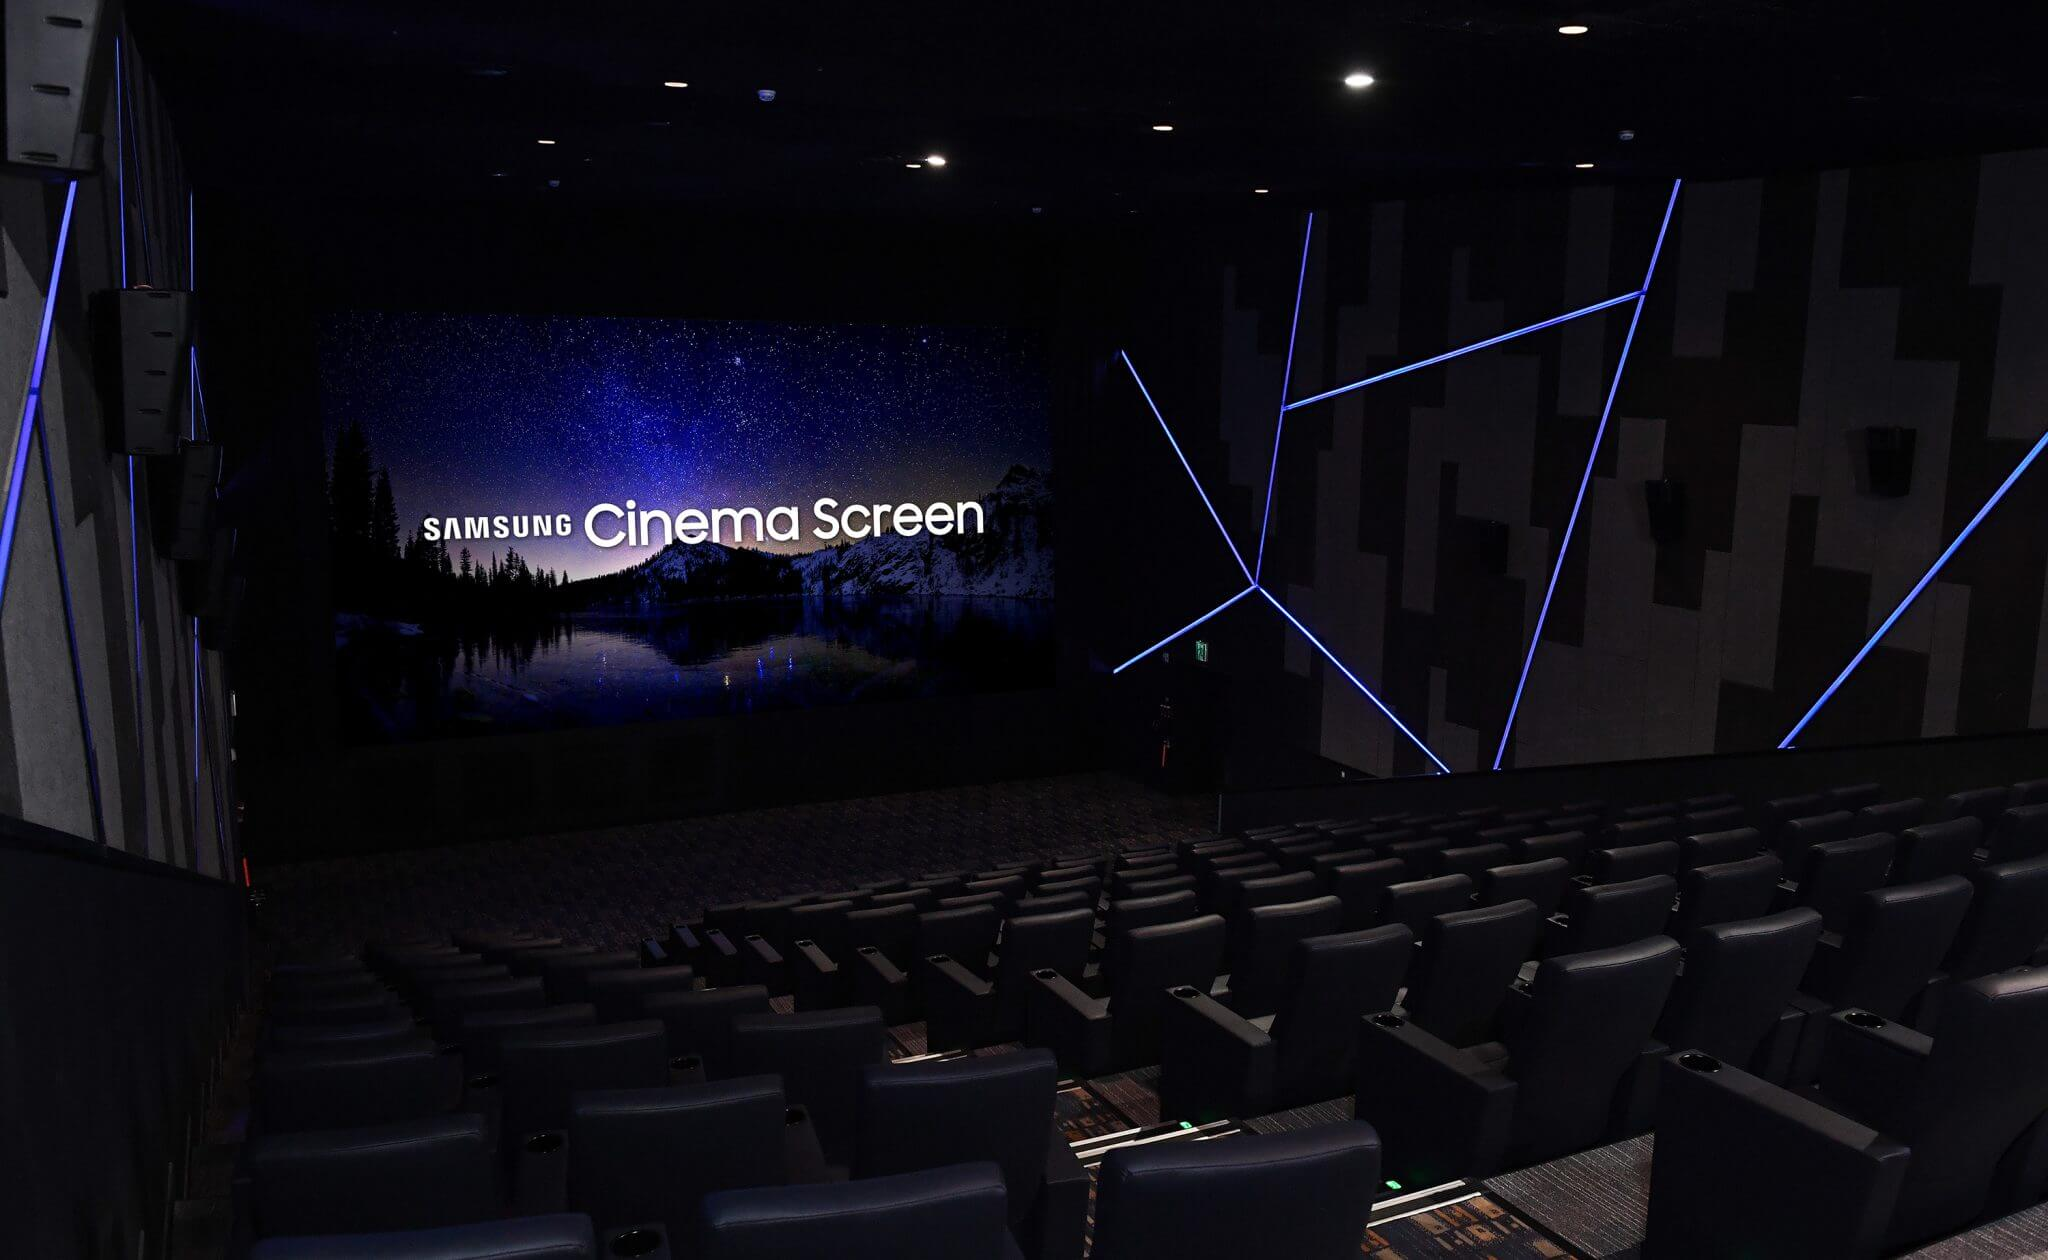 Samsung inaugura o primeiro cinema do mundo com um display LED 4K